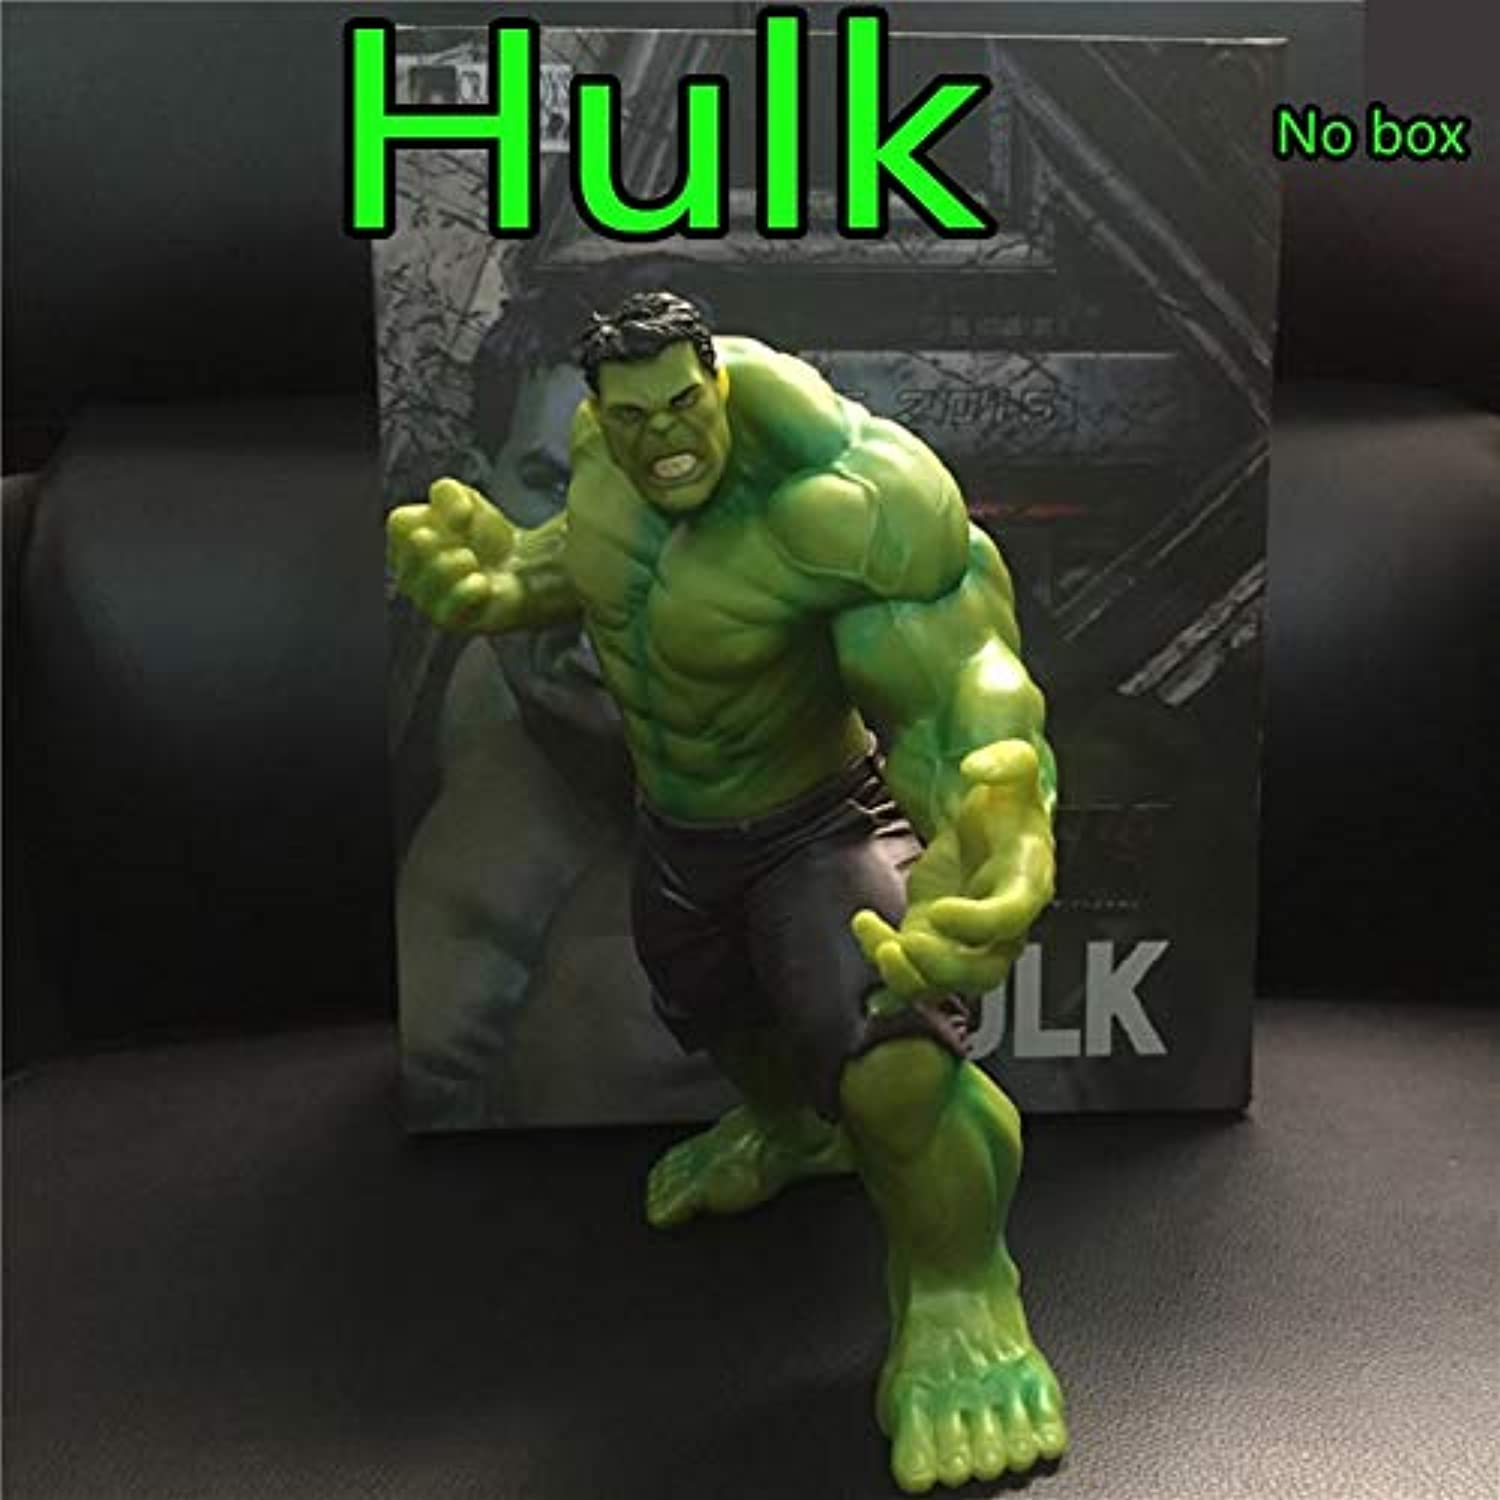 1 Pc 20 cm The Hulk PVC Action Figure Toy Anime Marvel's The Avengers Hulk Display Model Collection Toys Birthday 12 Action Figures for Boys